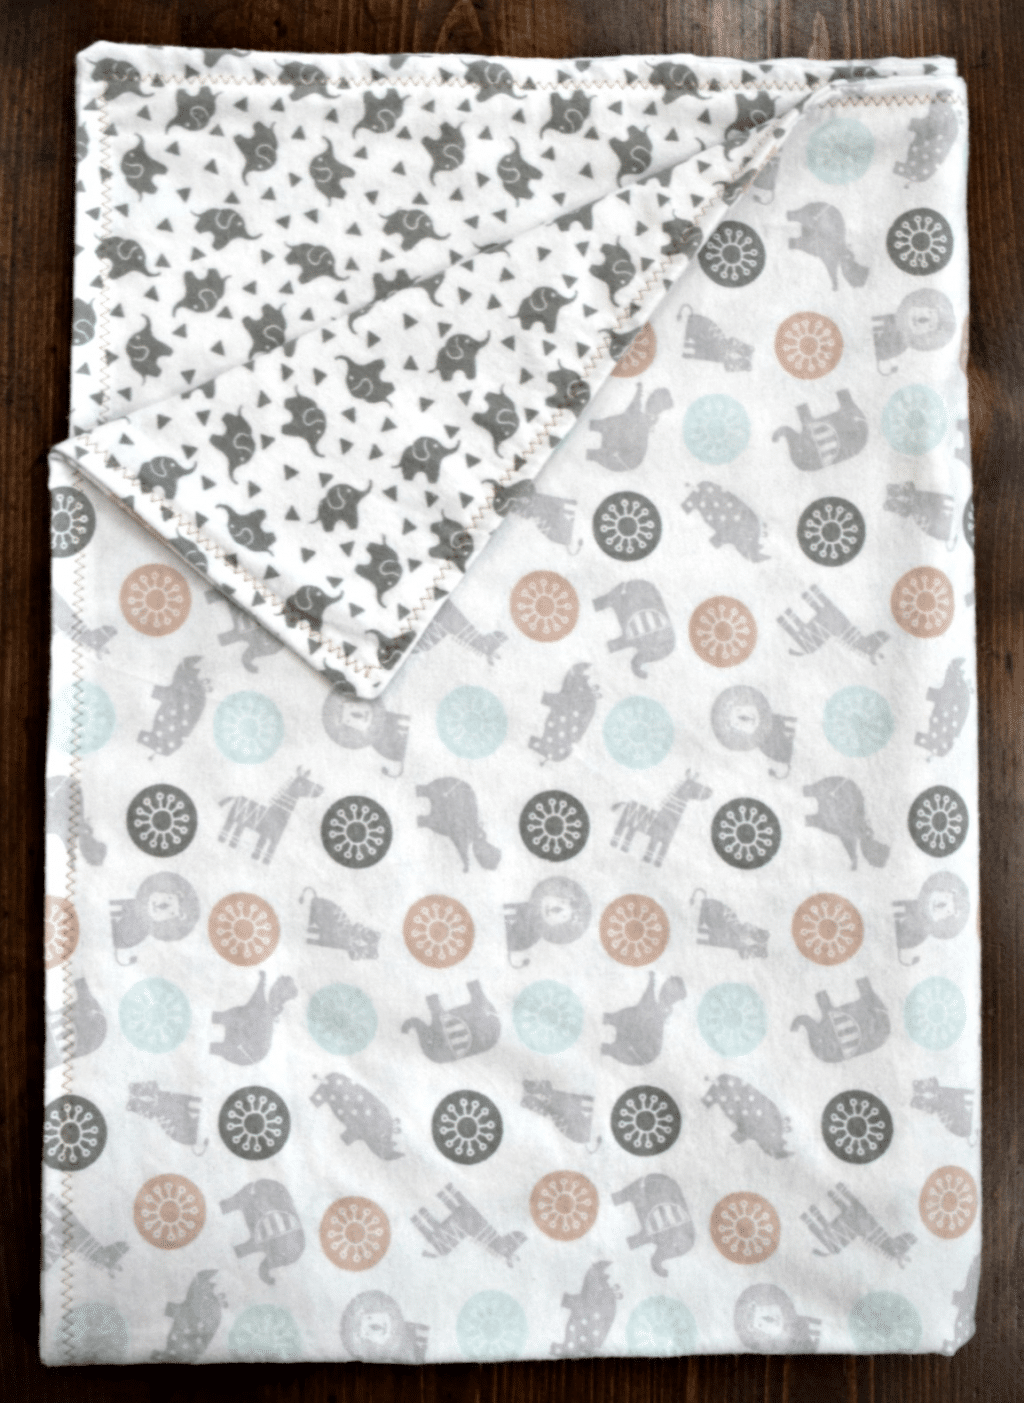 Here's how to make quick and easy baby blankets! These homemade baby blankets are a great DIY gift for babies